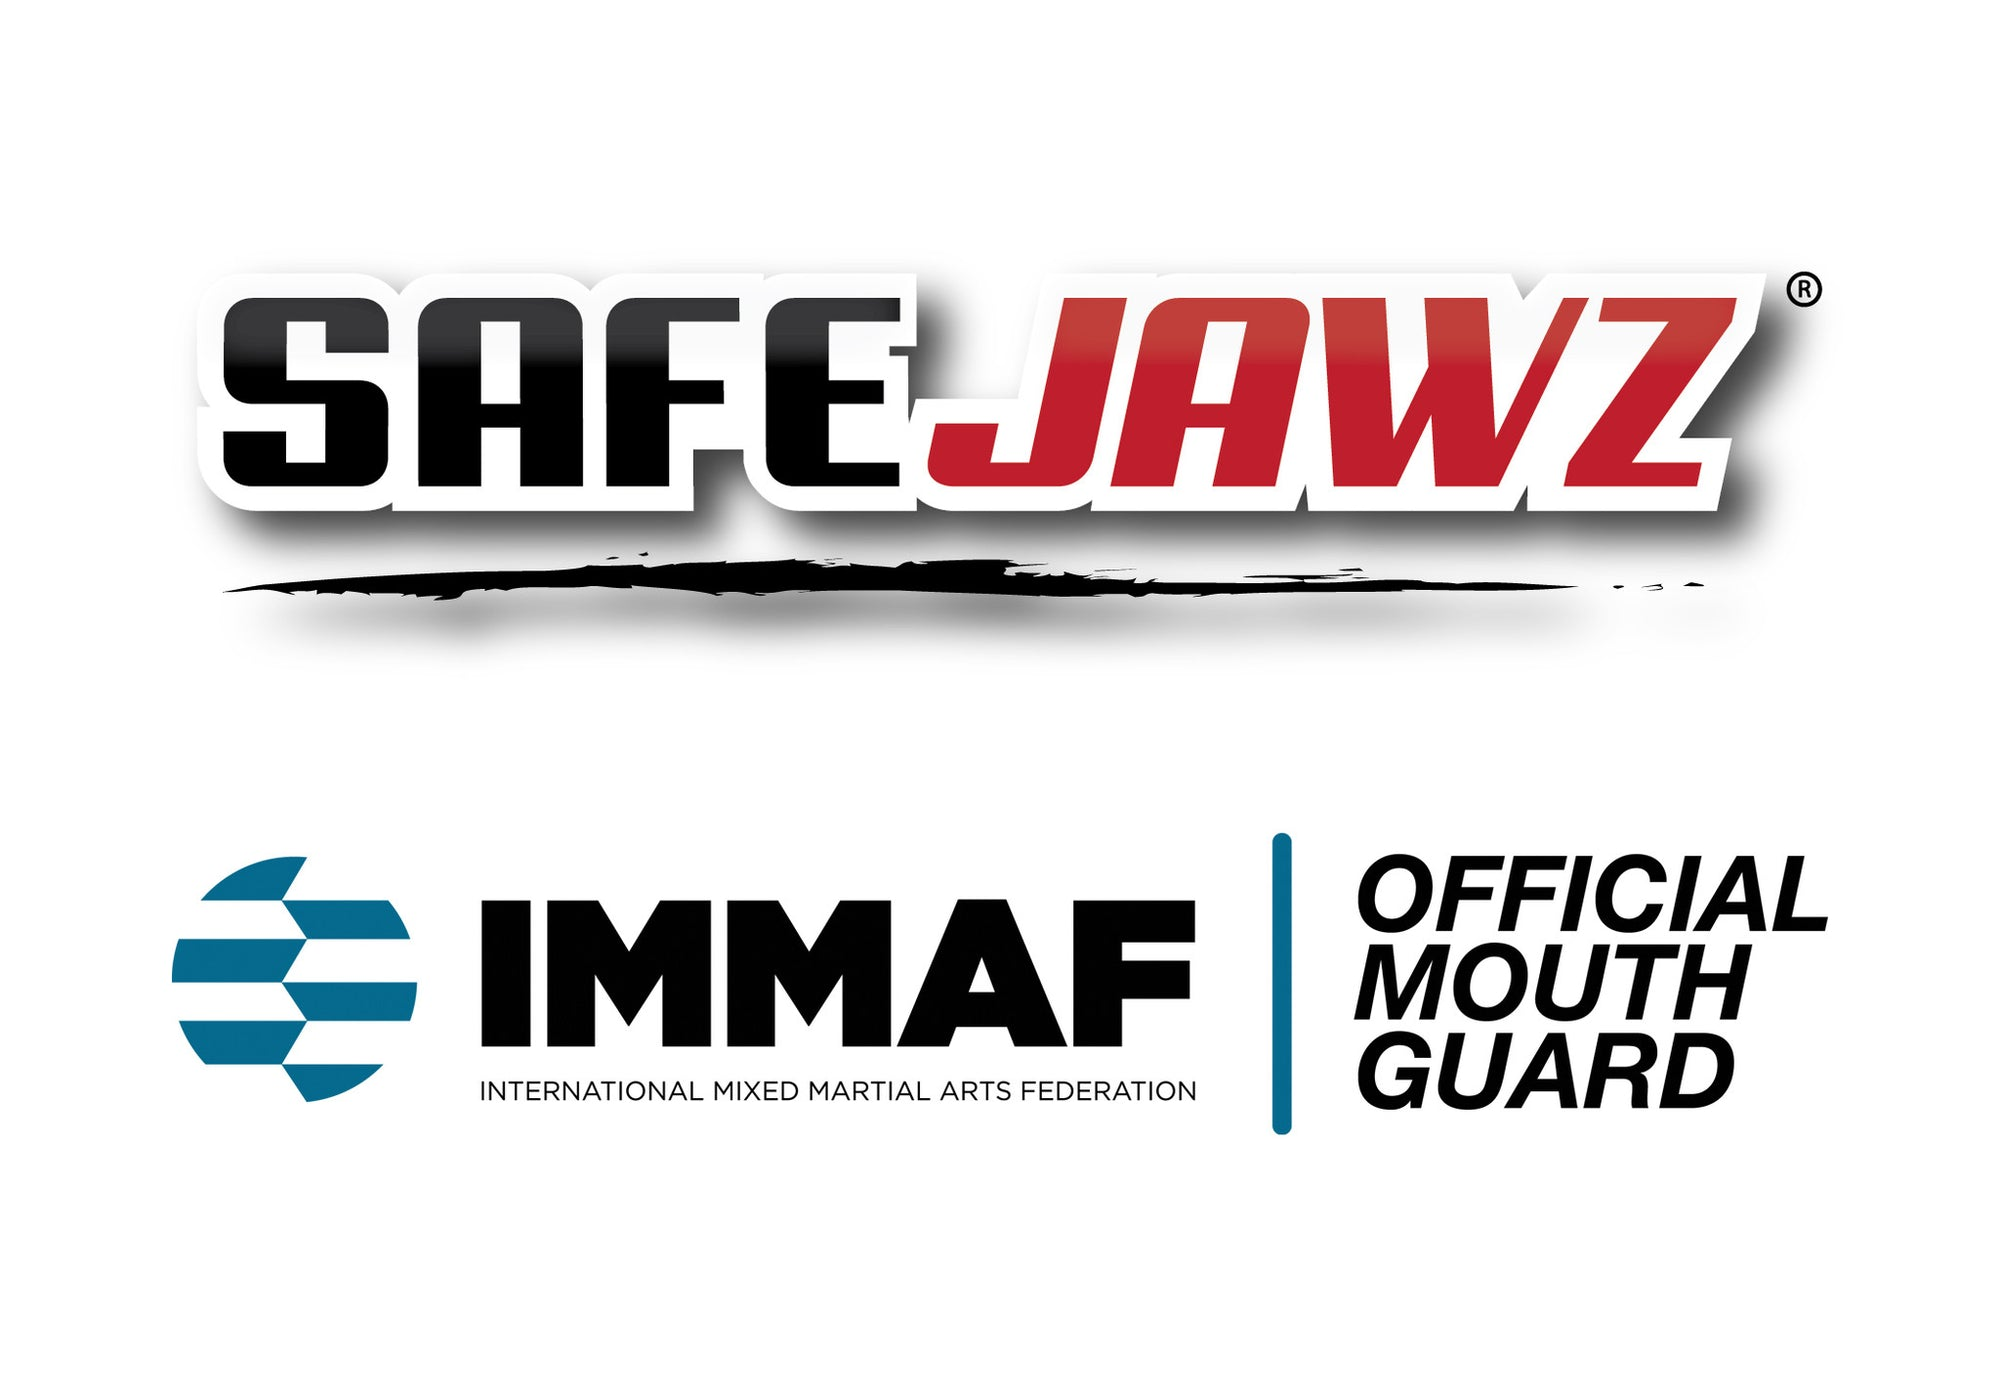 SAFEJAWZ® becomes global mouthguard partner of IMMAF.